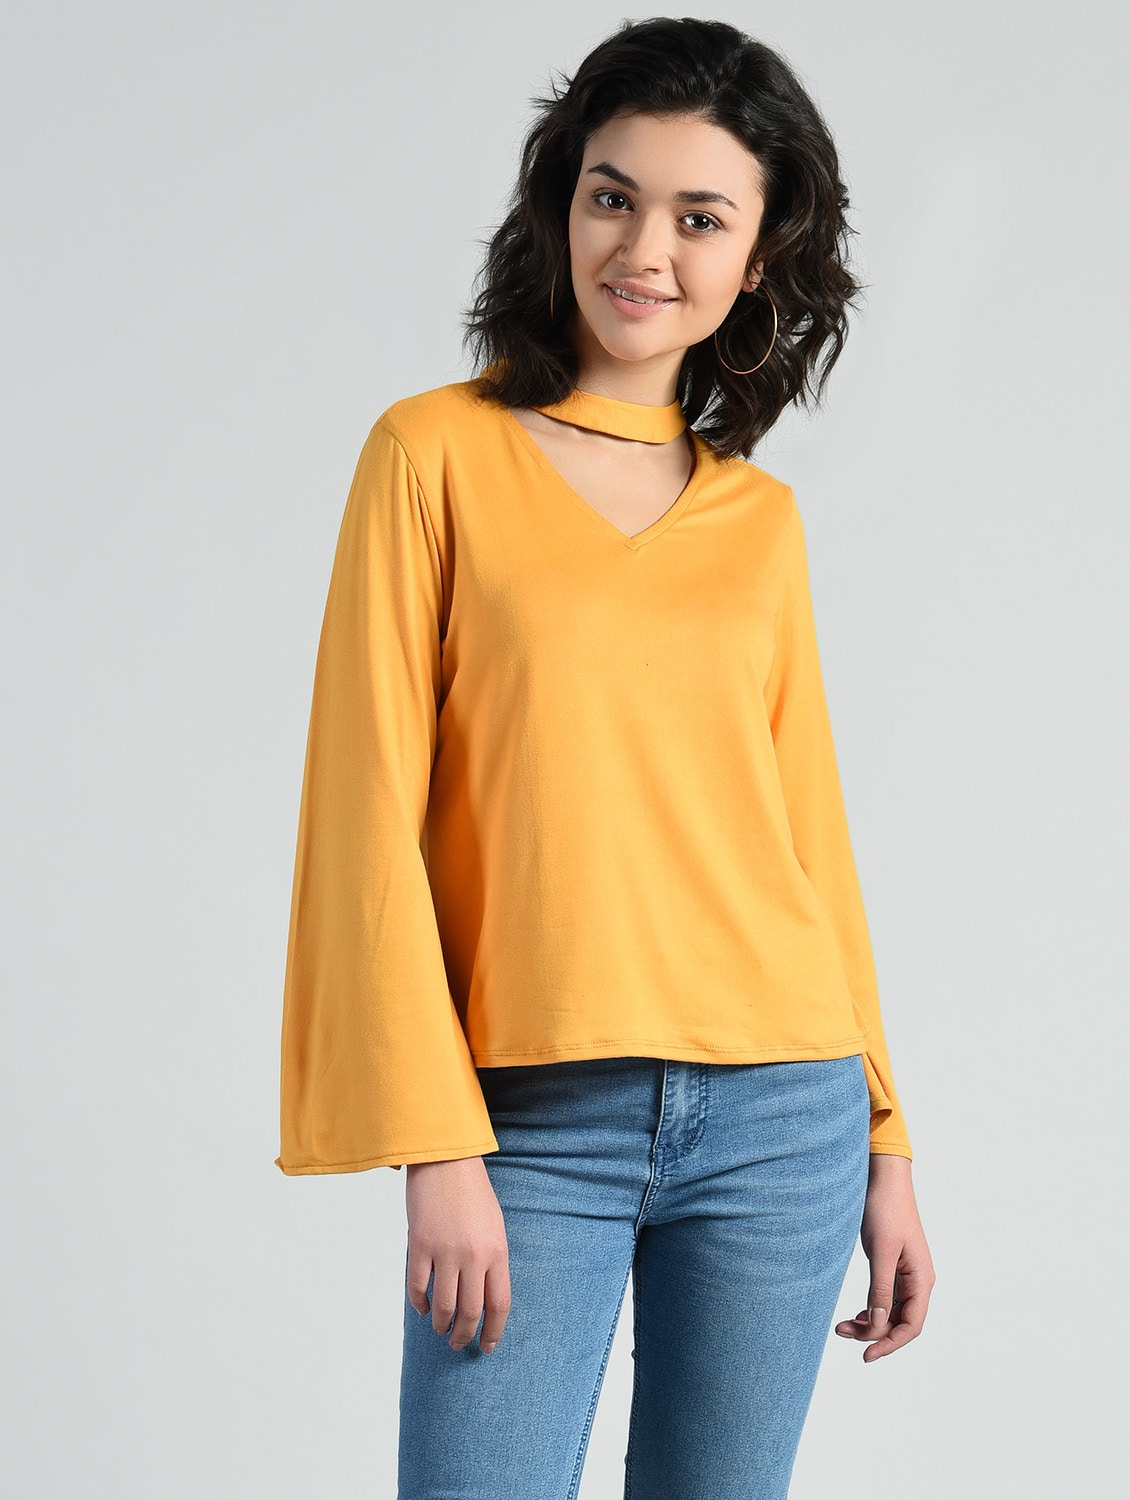 bcac3877751be Buy Choker Neck Bell Sleeve Top for Women from Aara for ₹529 at 47% off